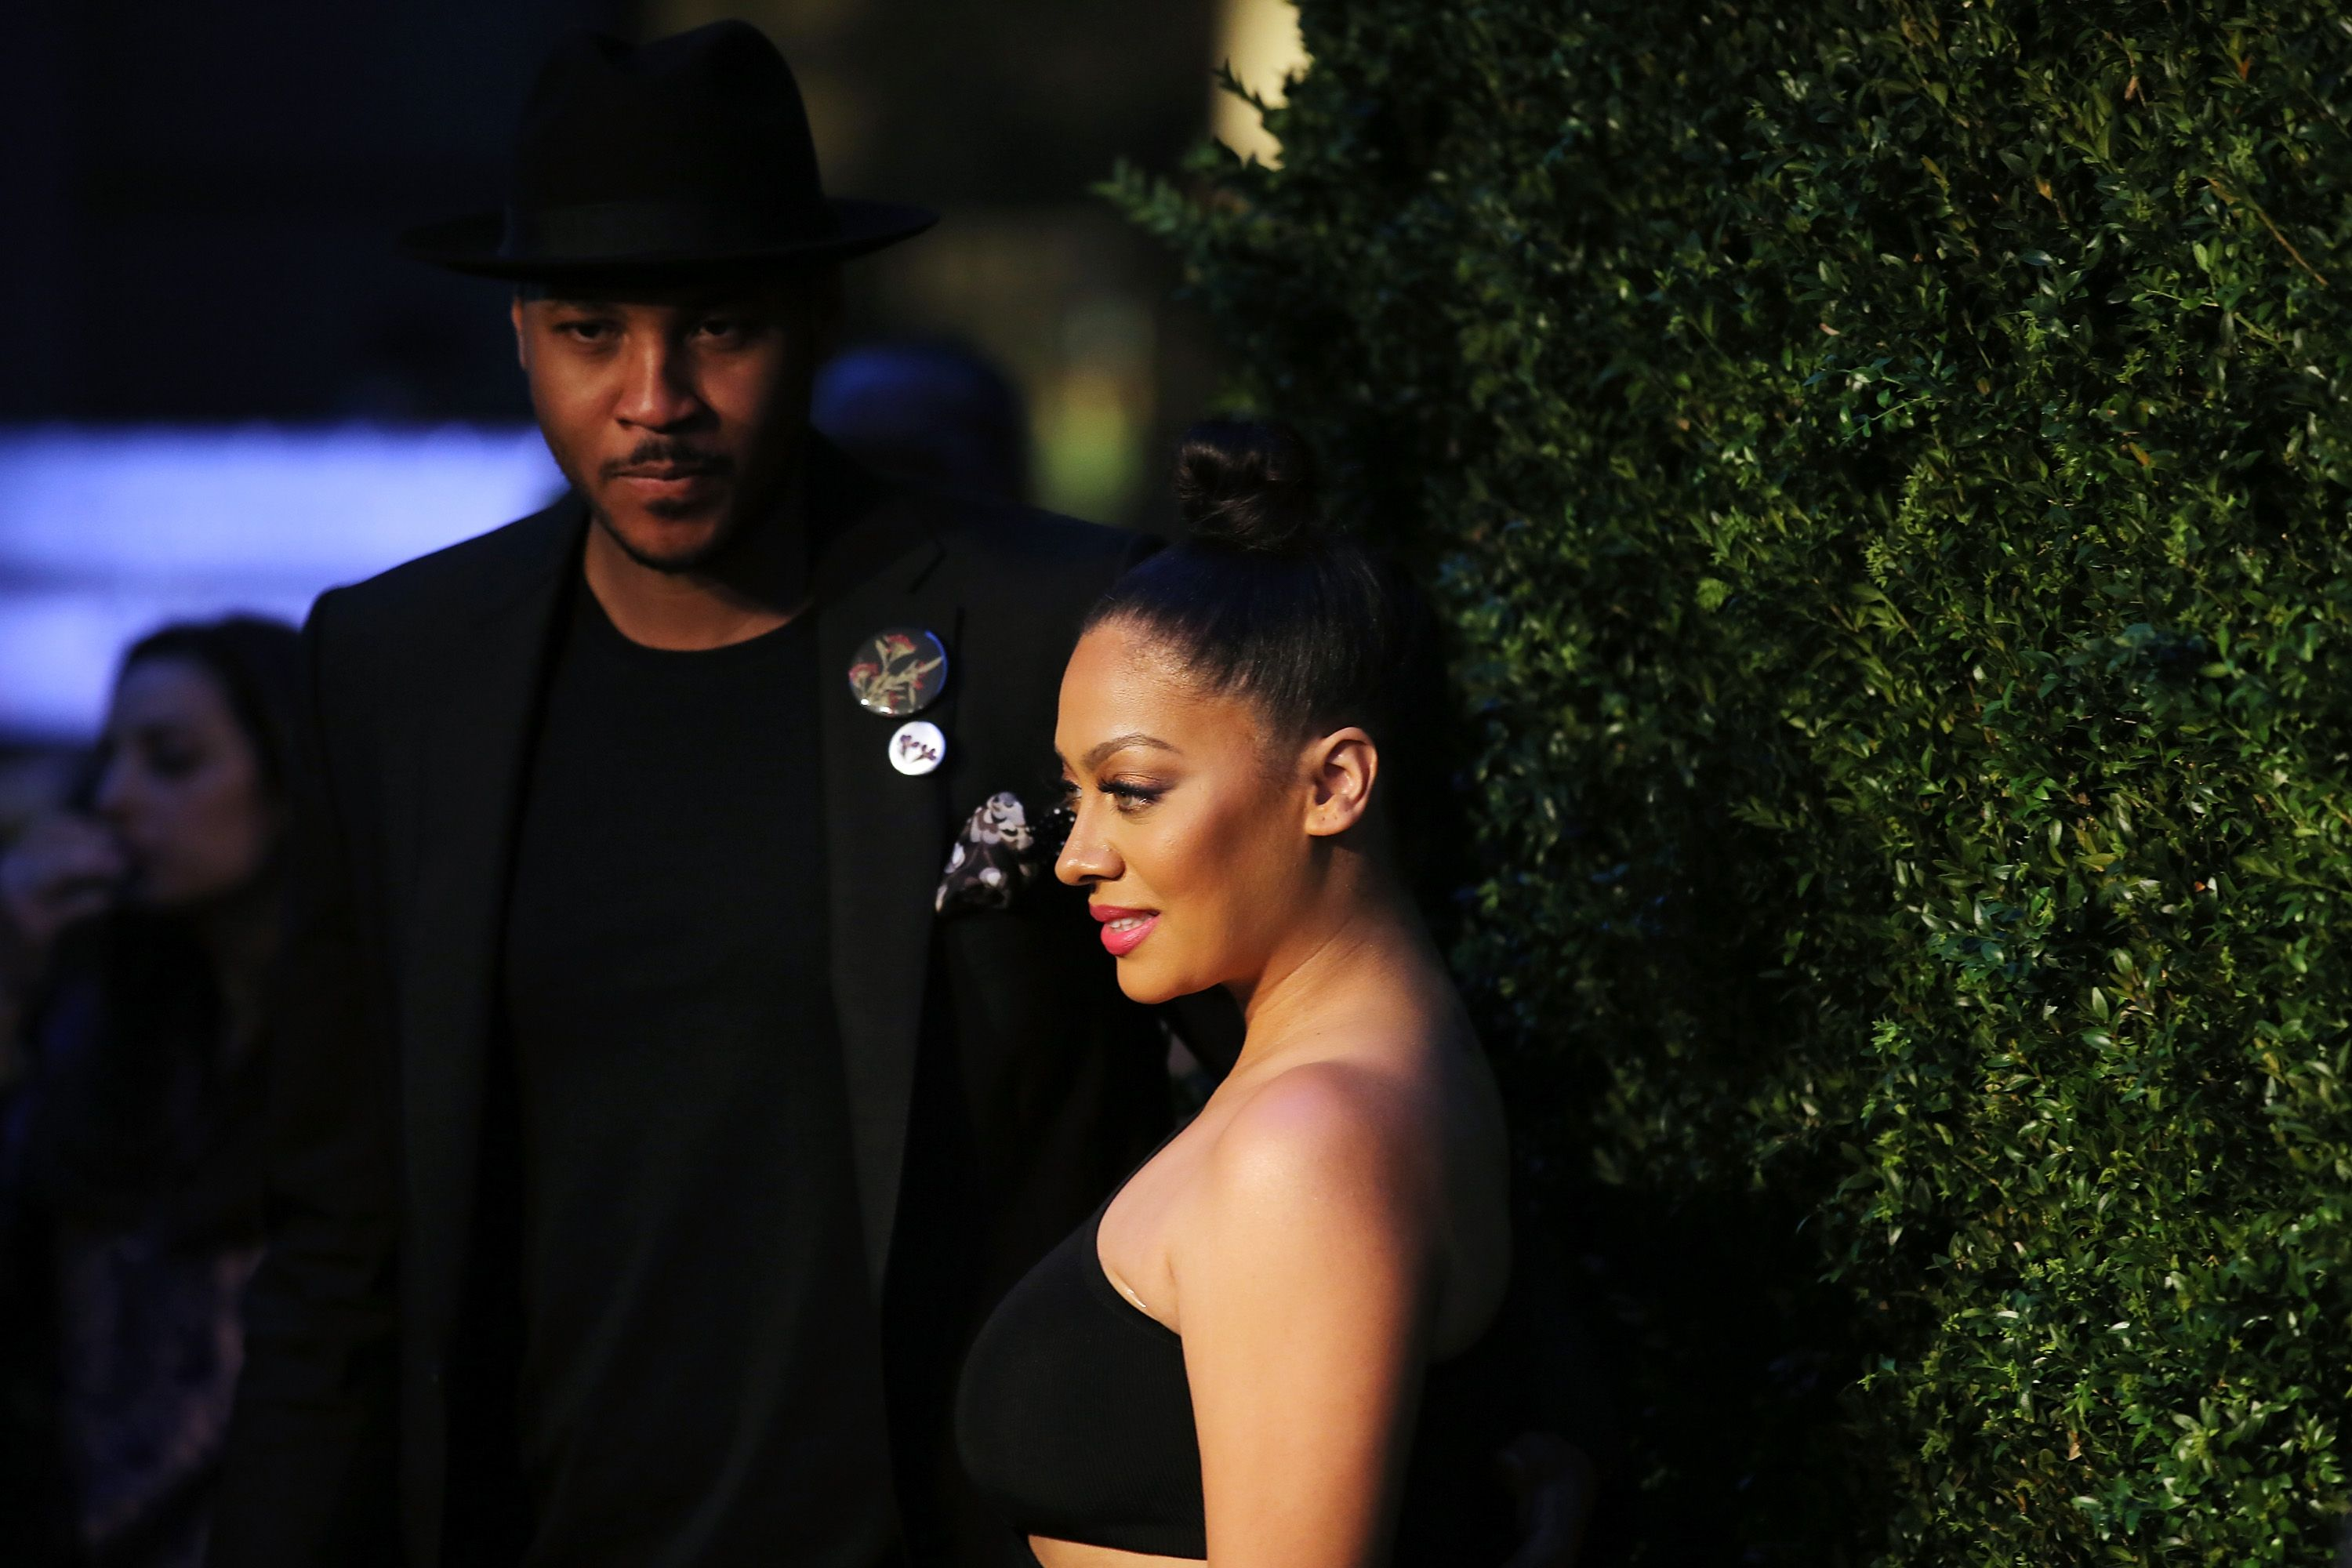 Carmelo Anthony and La La Anthony attend the 11th Annual Chanel Tribeca Film Festival Artists Dinner at Balthazar on April 18, 2016 in New York City. | Source: Getty Images